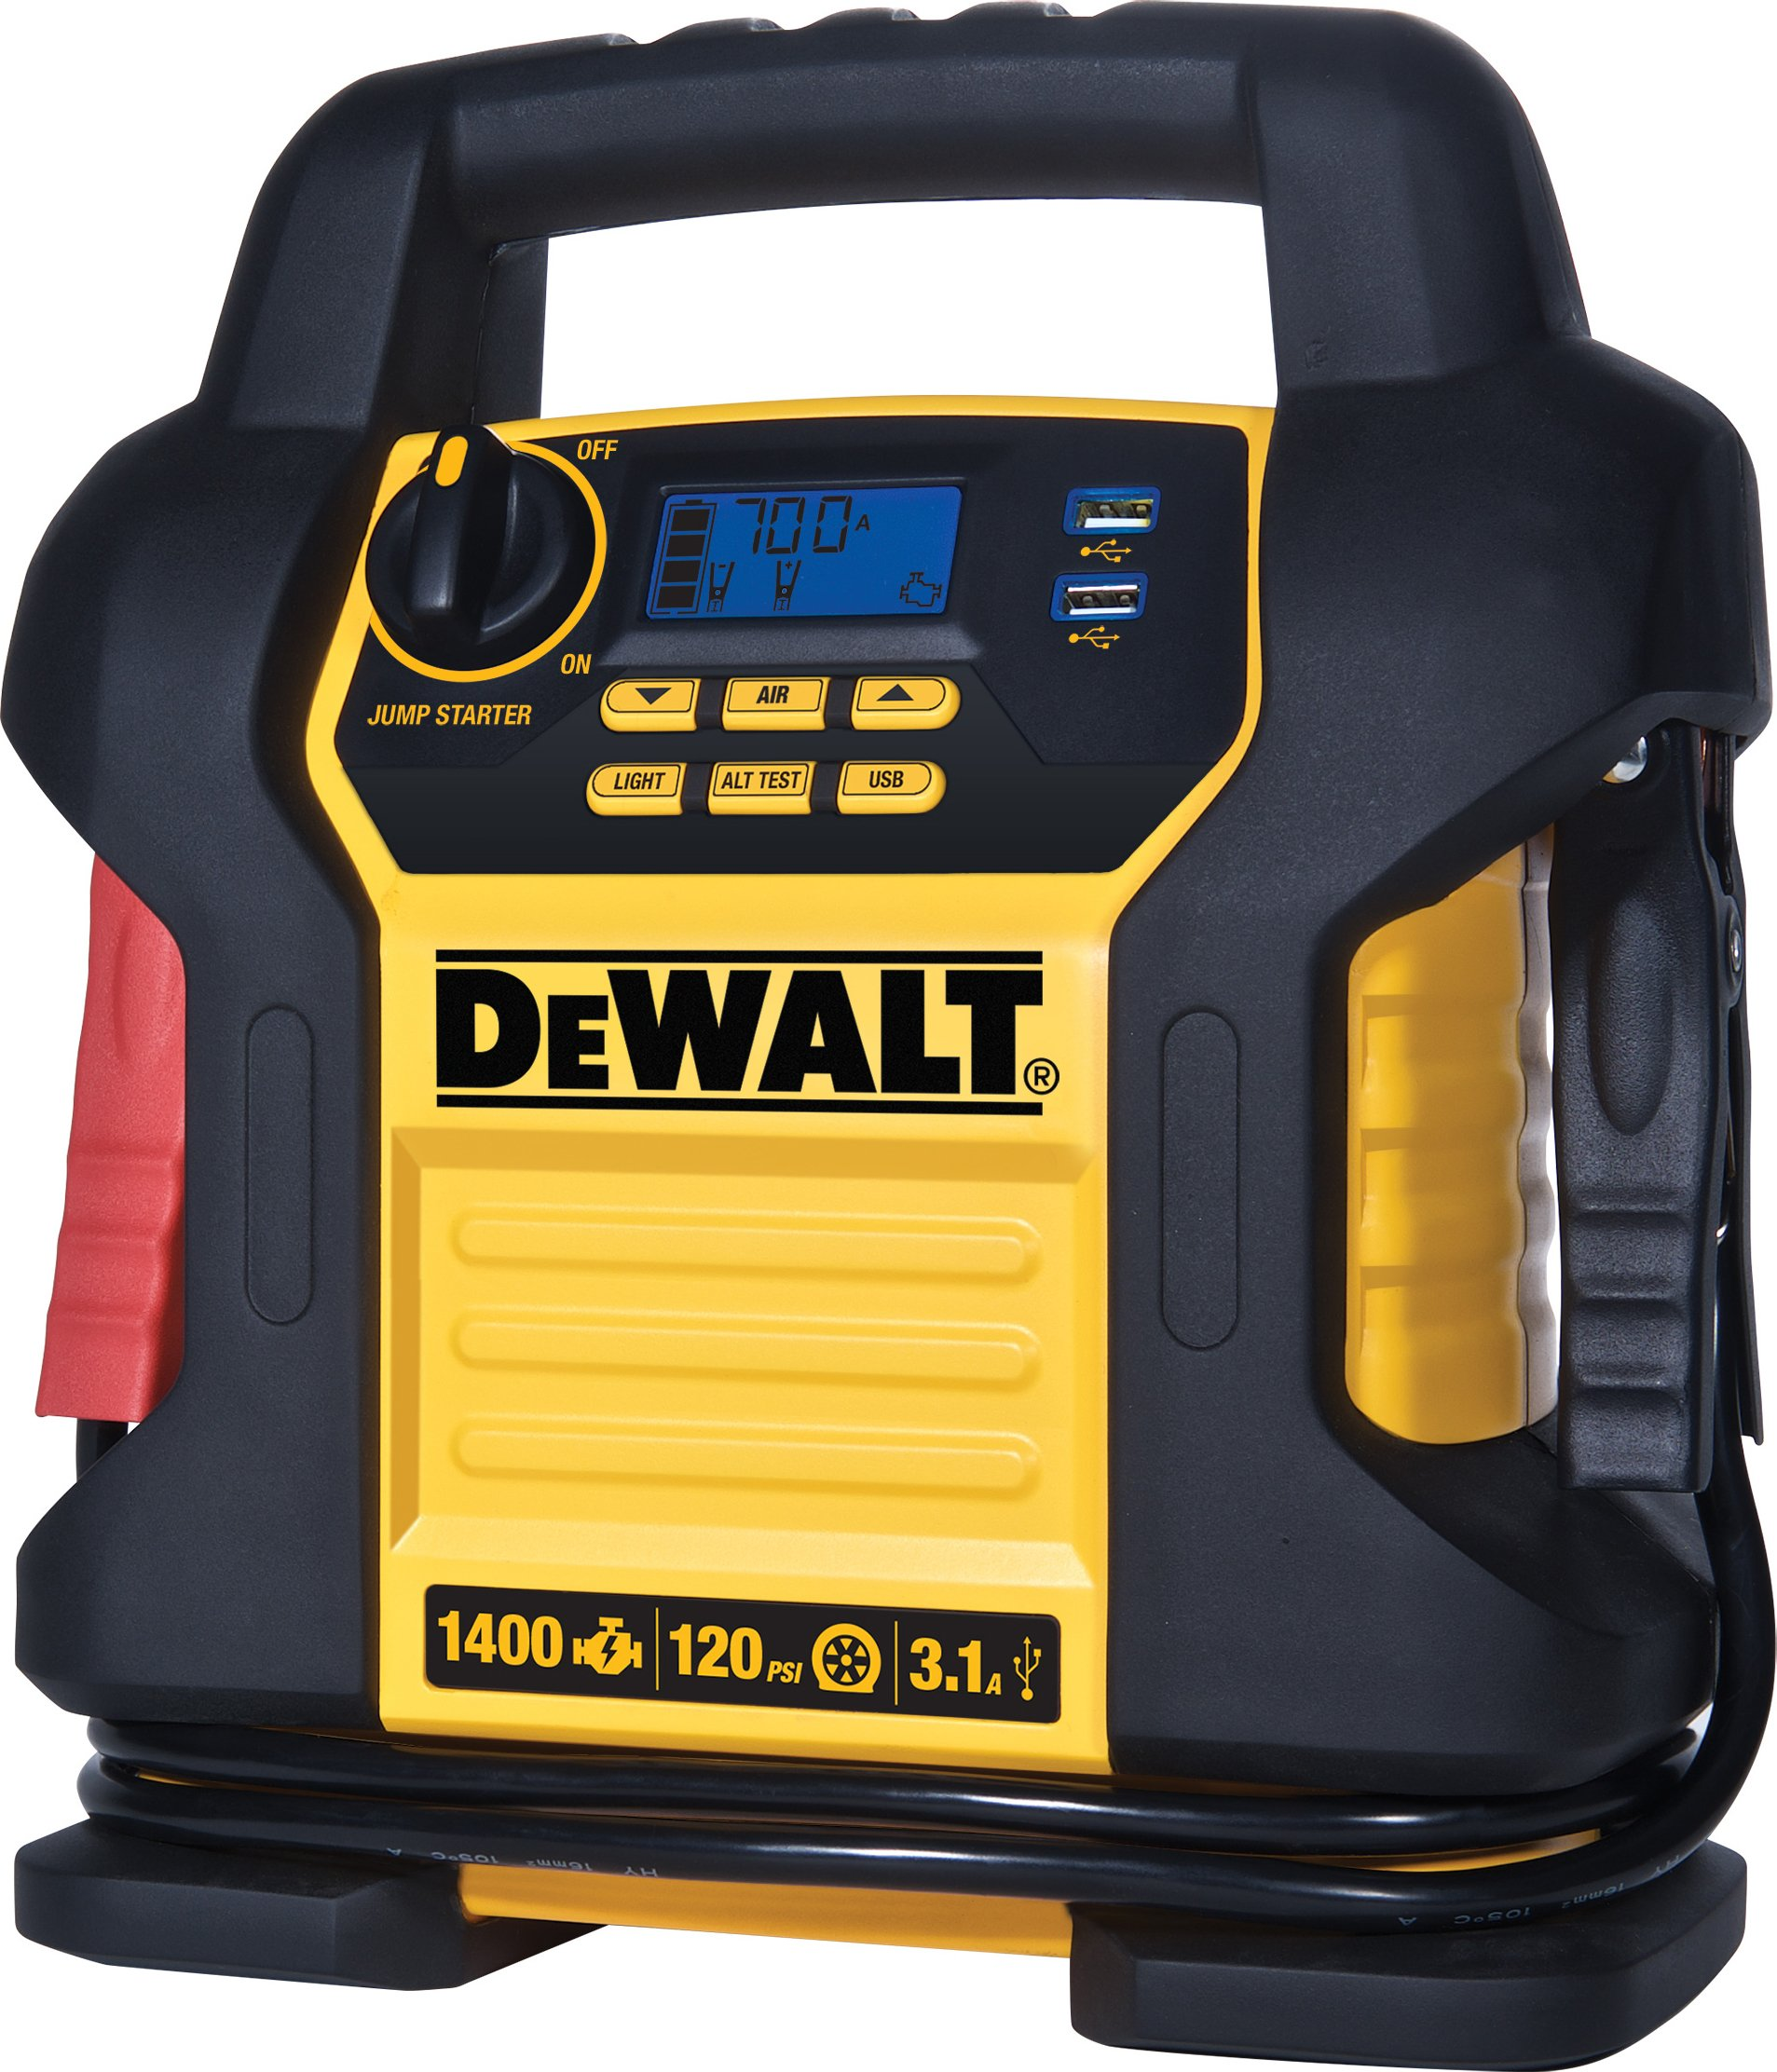 DEWALT DXAEJ14 Power Station Jump Starter: 1400 Peak/700 Instant Amps, 120 PSI Digital Air Compressor,